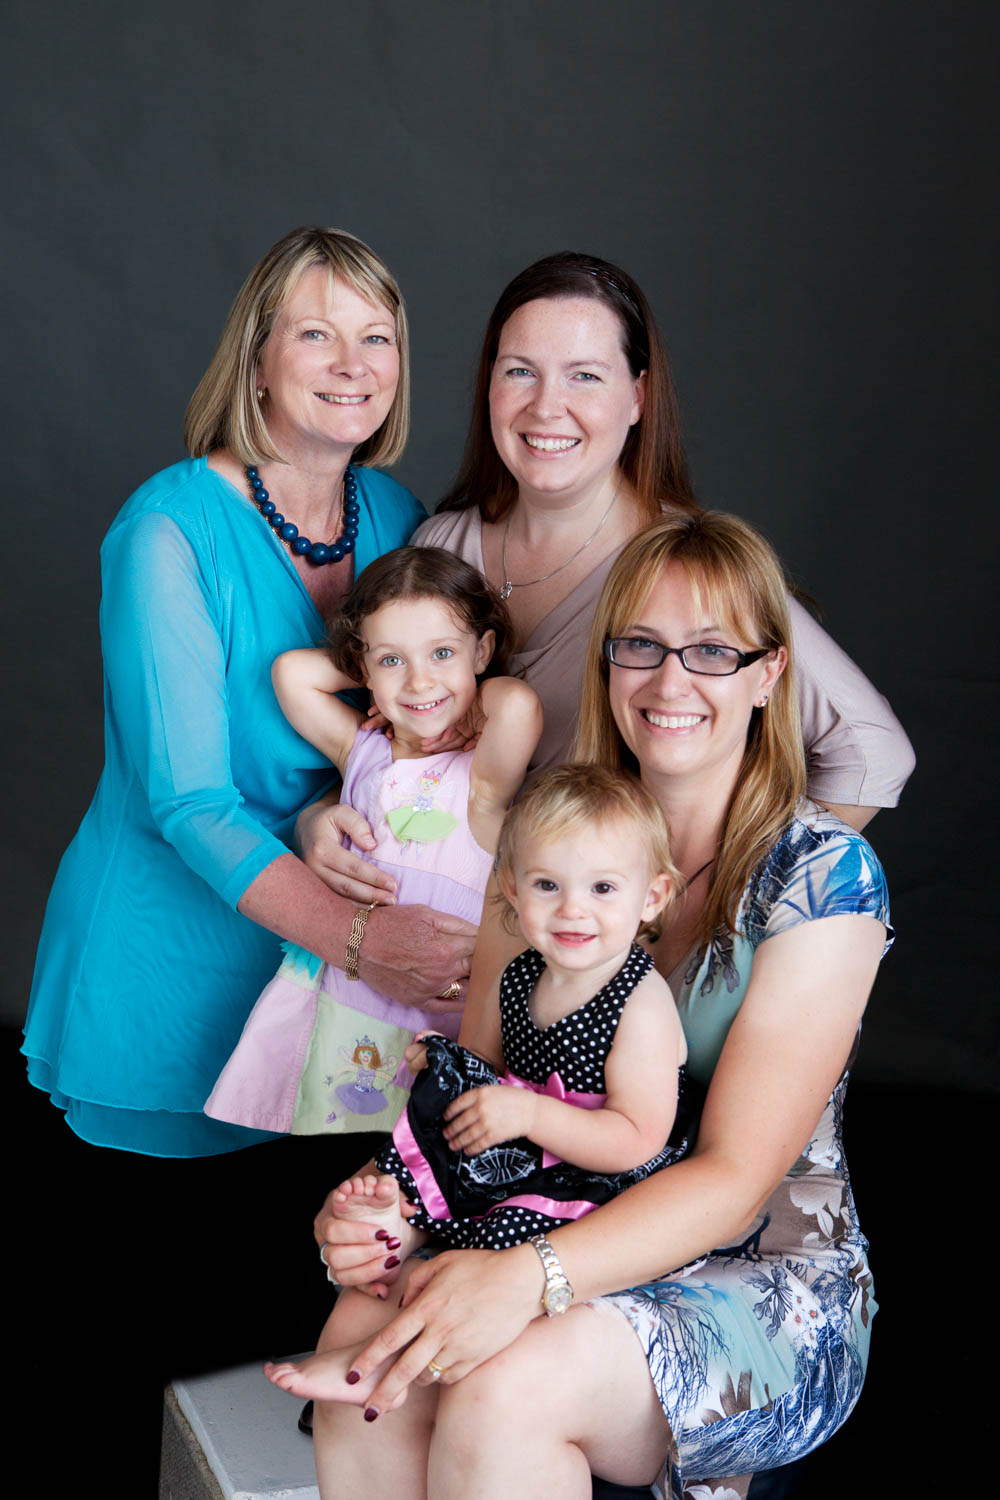 Family_Photographer_Auckland_16518_4588.jpg